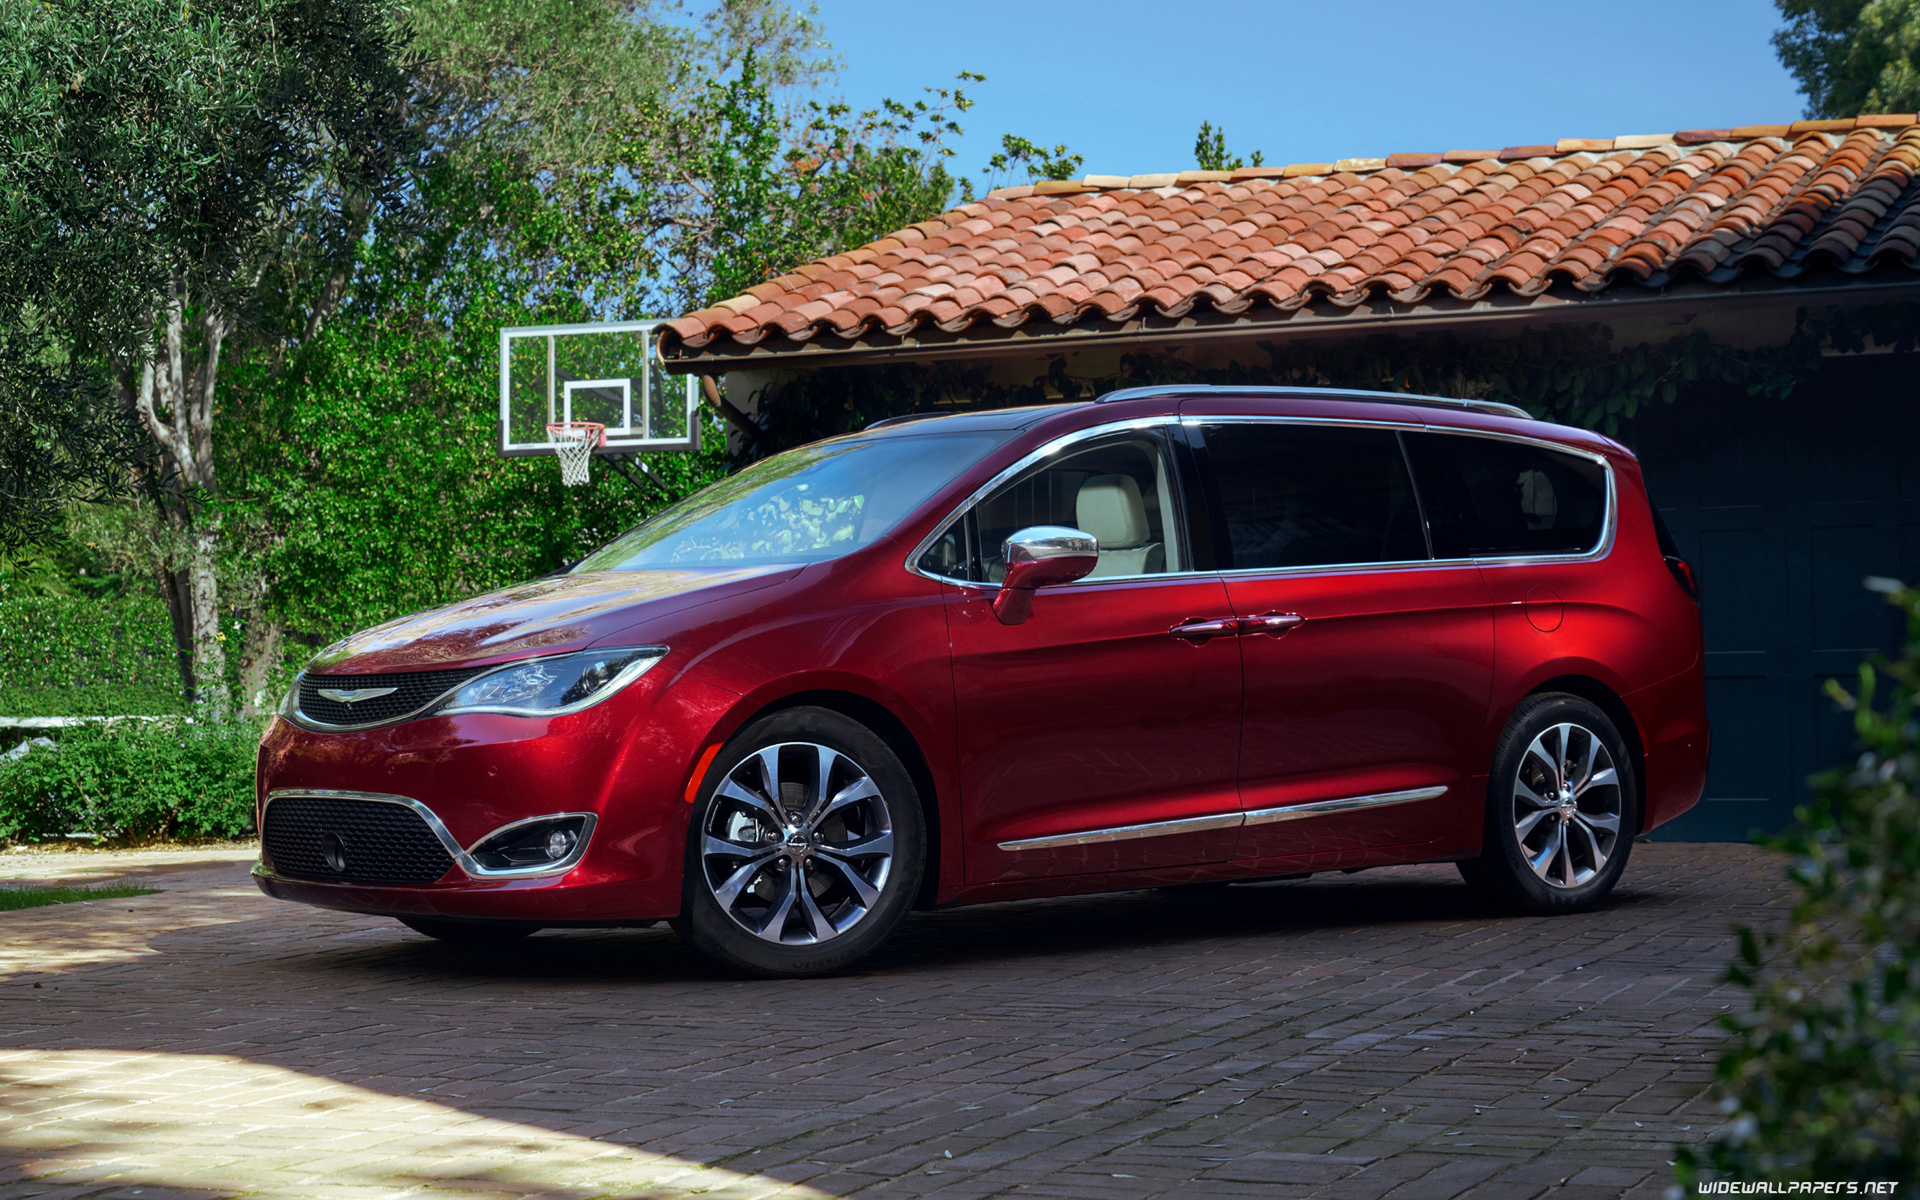 Chrysler Pacifica cars desktop wallpapers HD and wide wallpapers